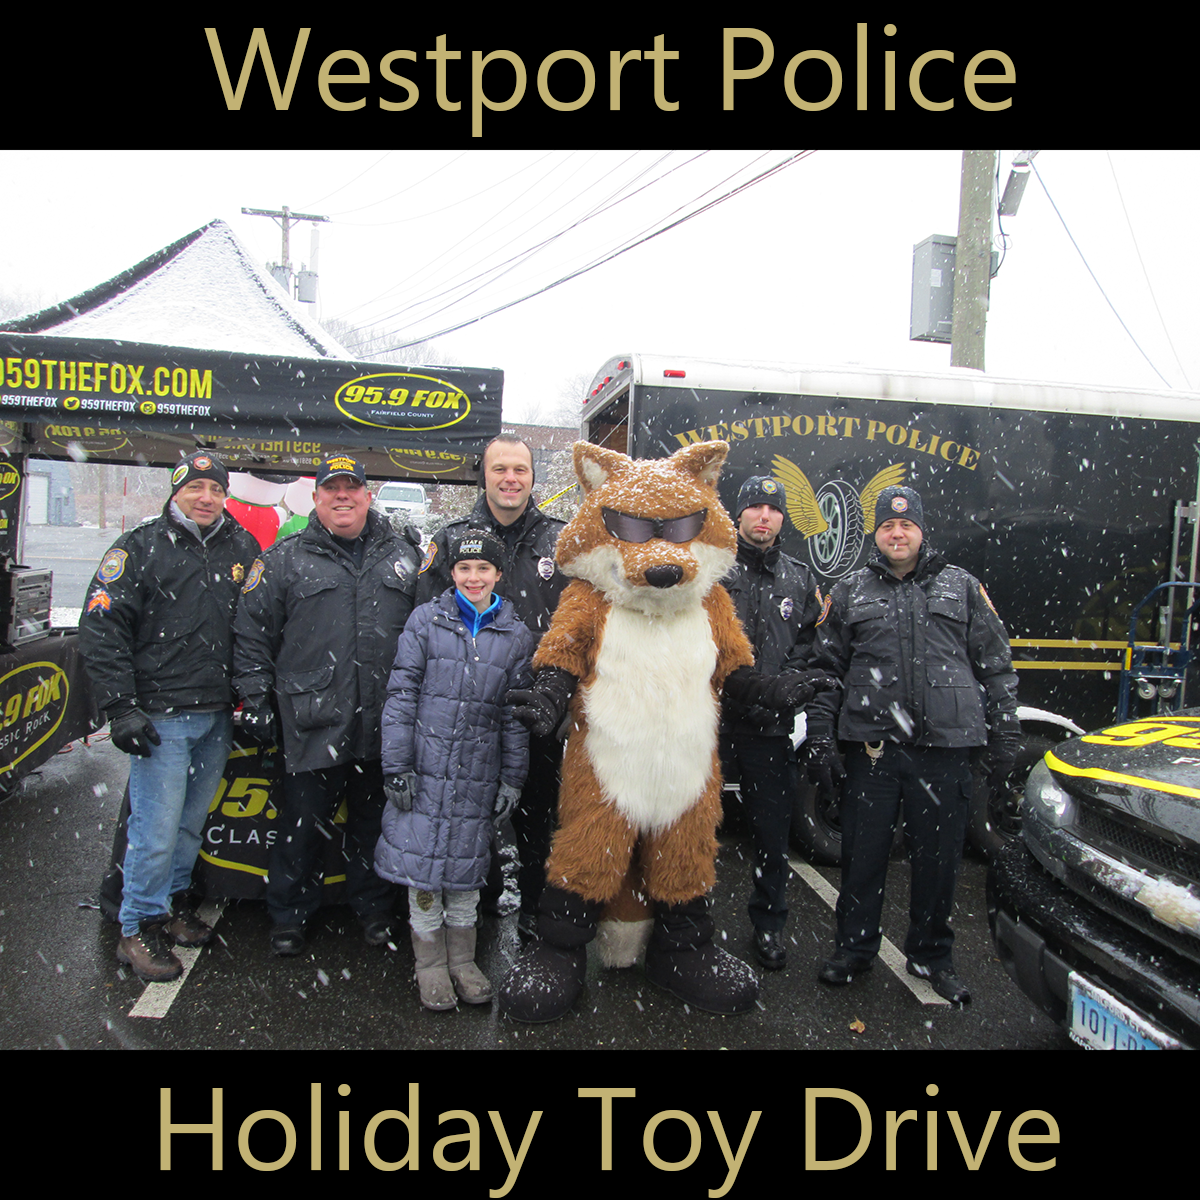 Westport Police Holiday Toy Drive